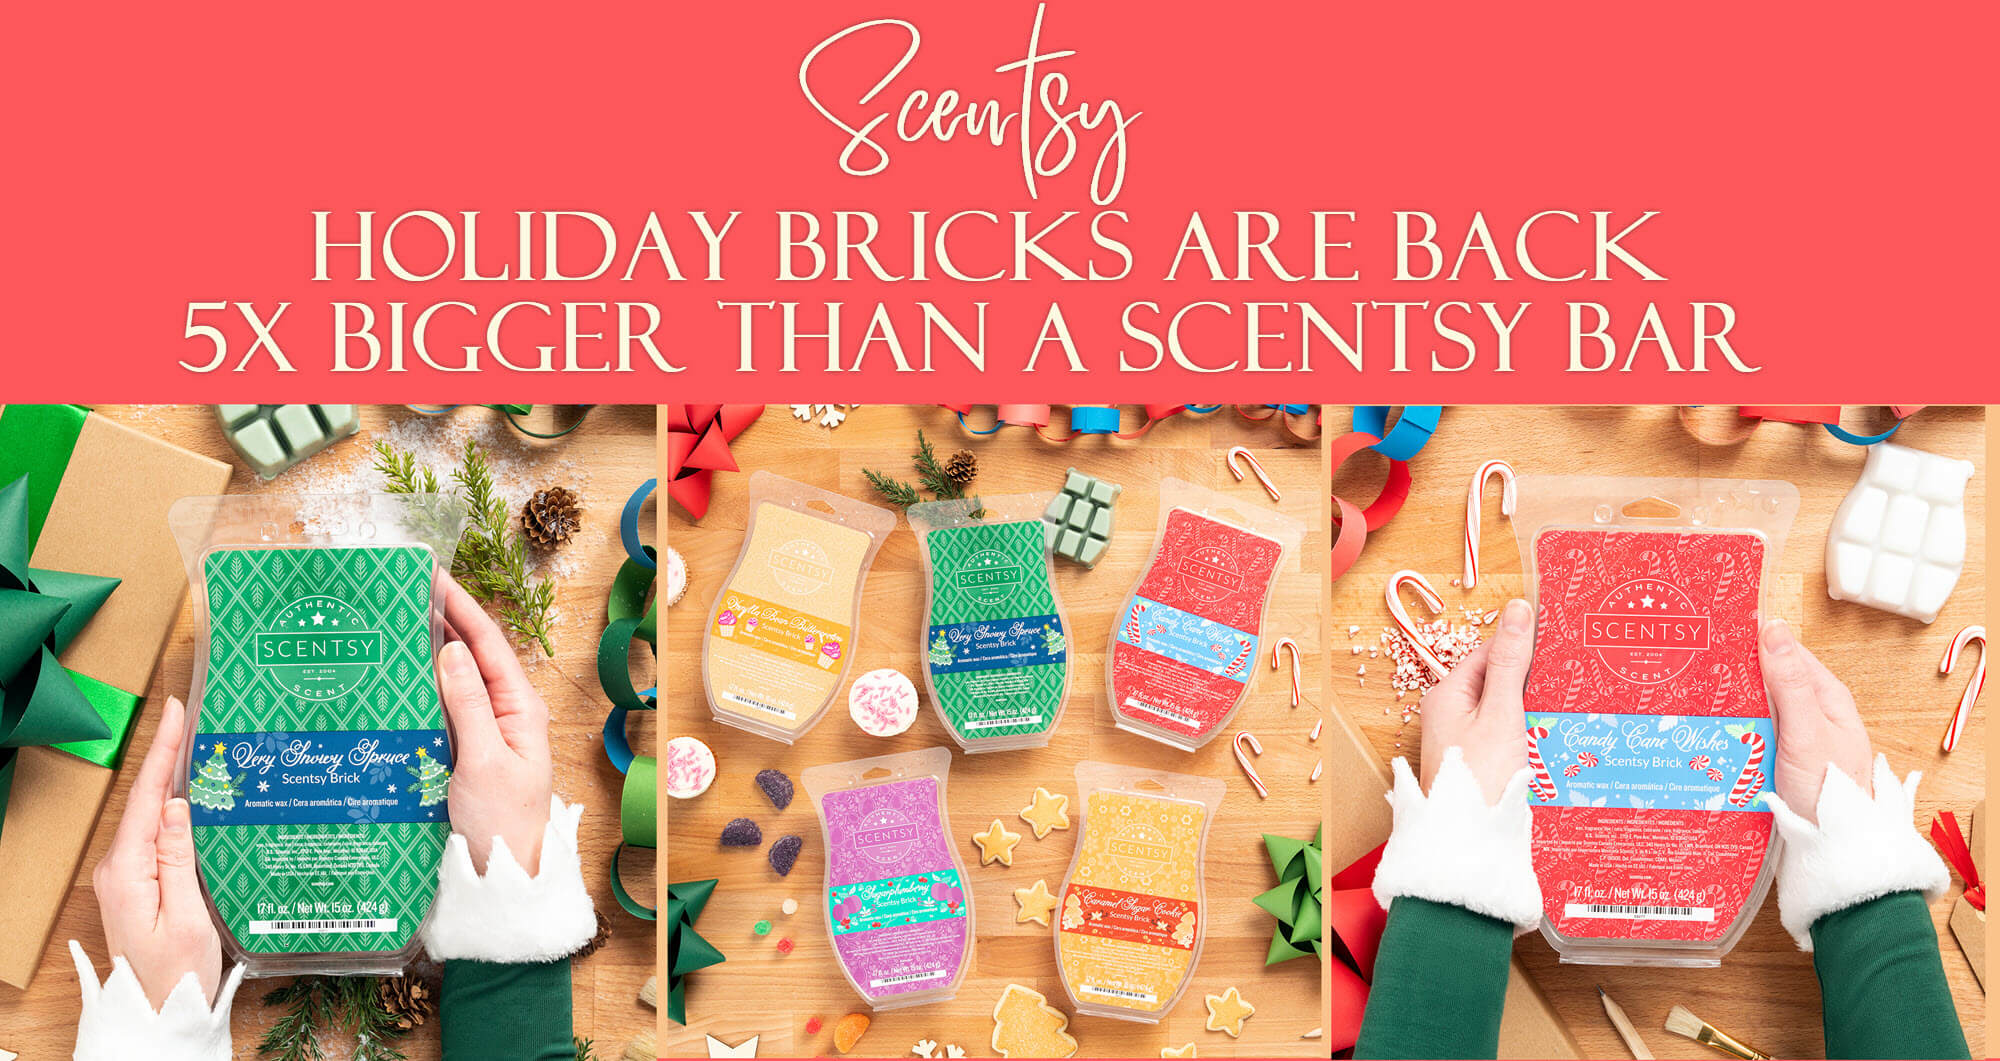 Scentsy Holiday Bricks 2019 Buy Scentsy Online